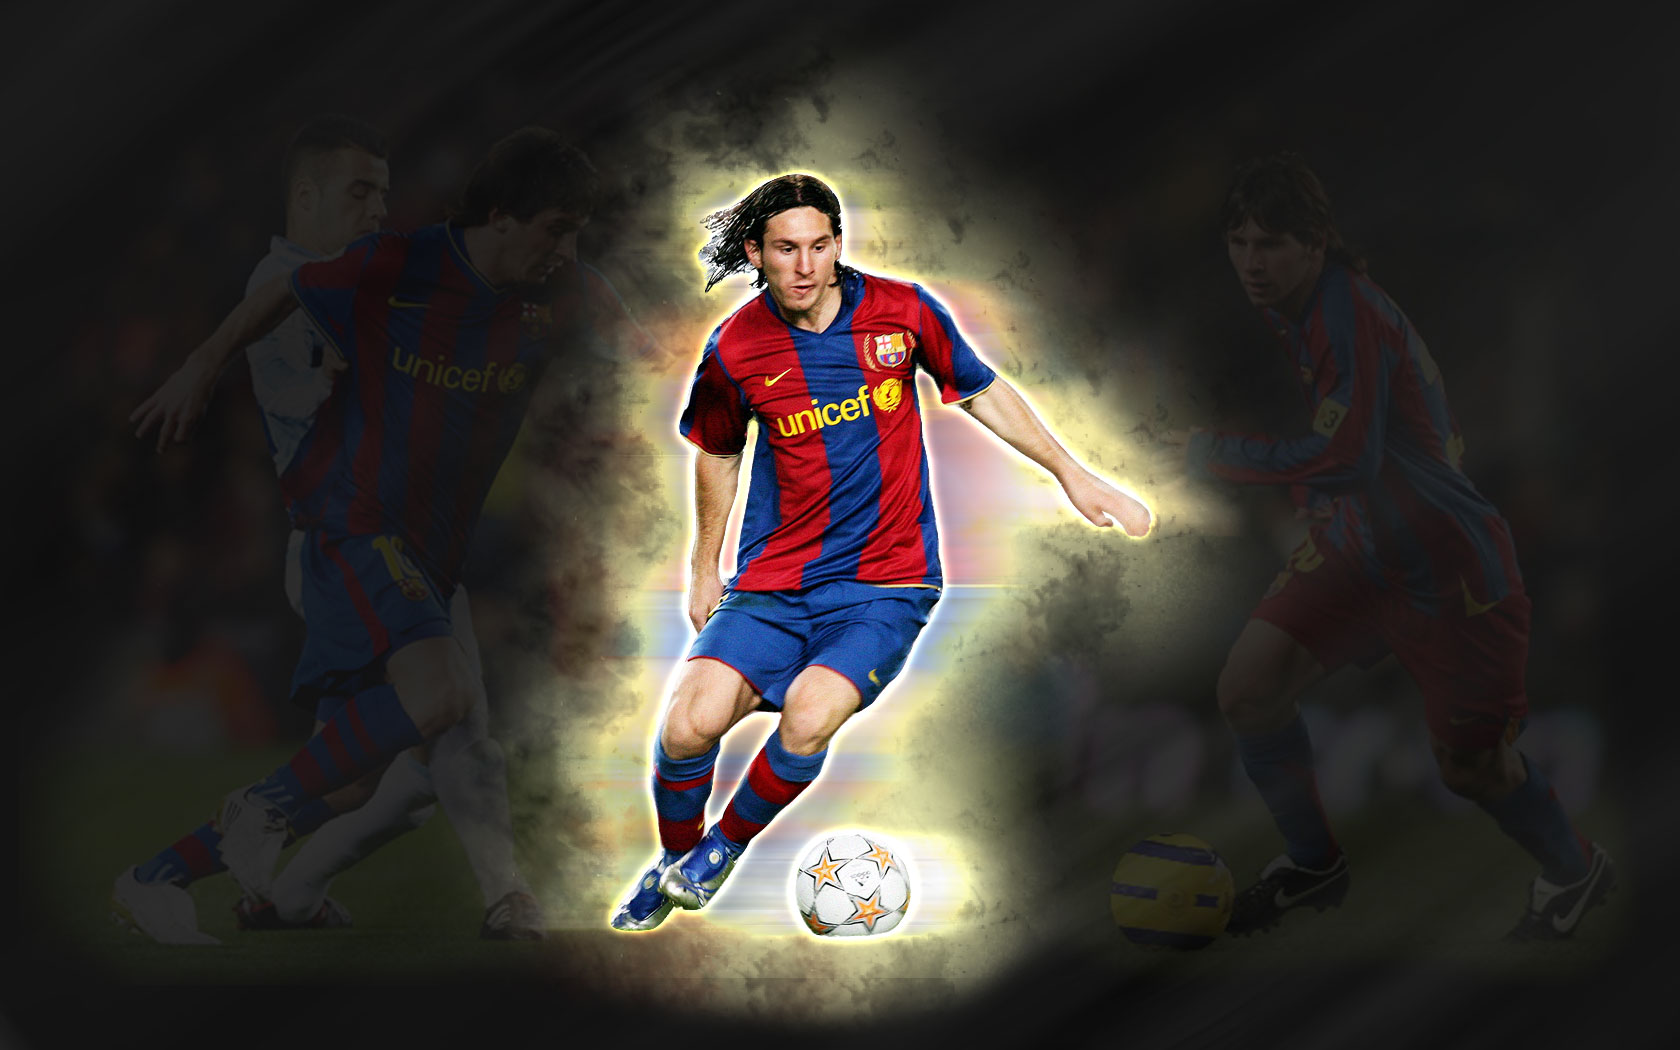 Lionel Messi Wallpaper 10 10255 Hd Wallpapers in Football   Imagesci 1680x1050